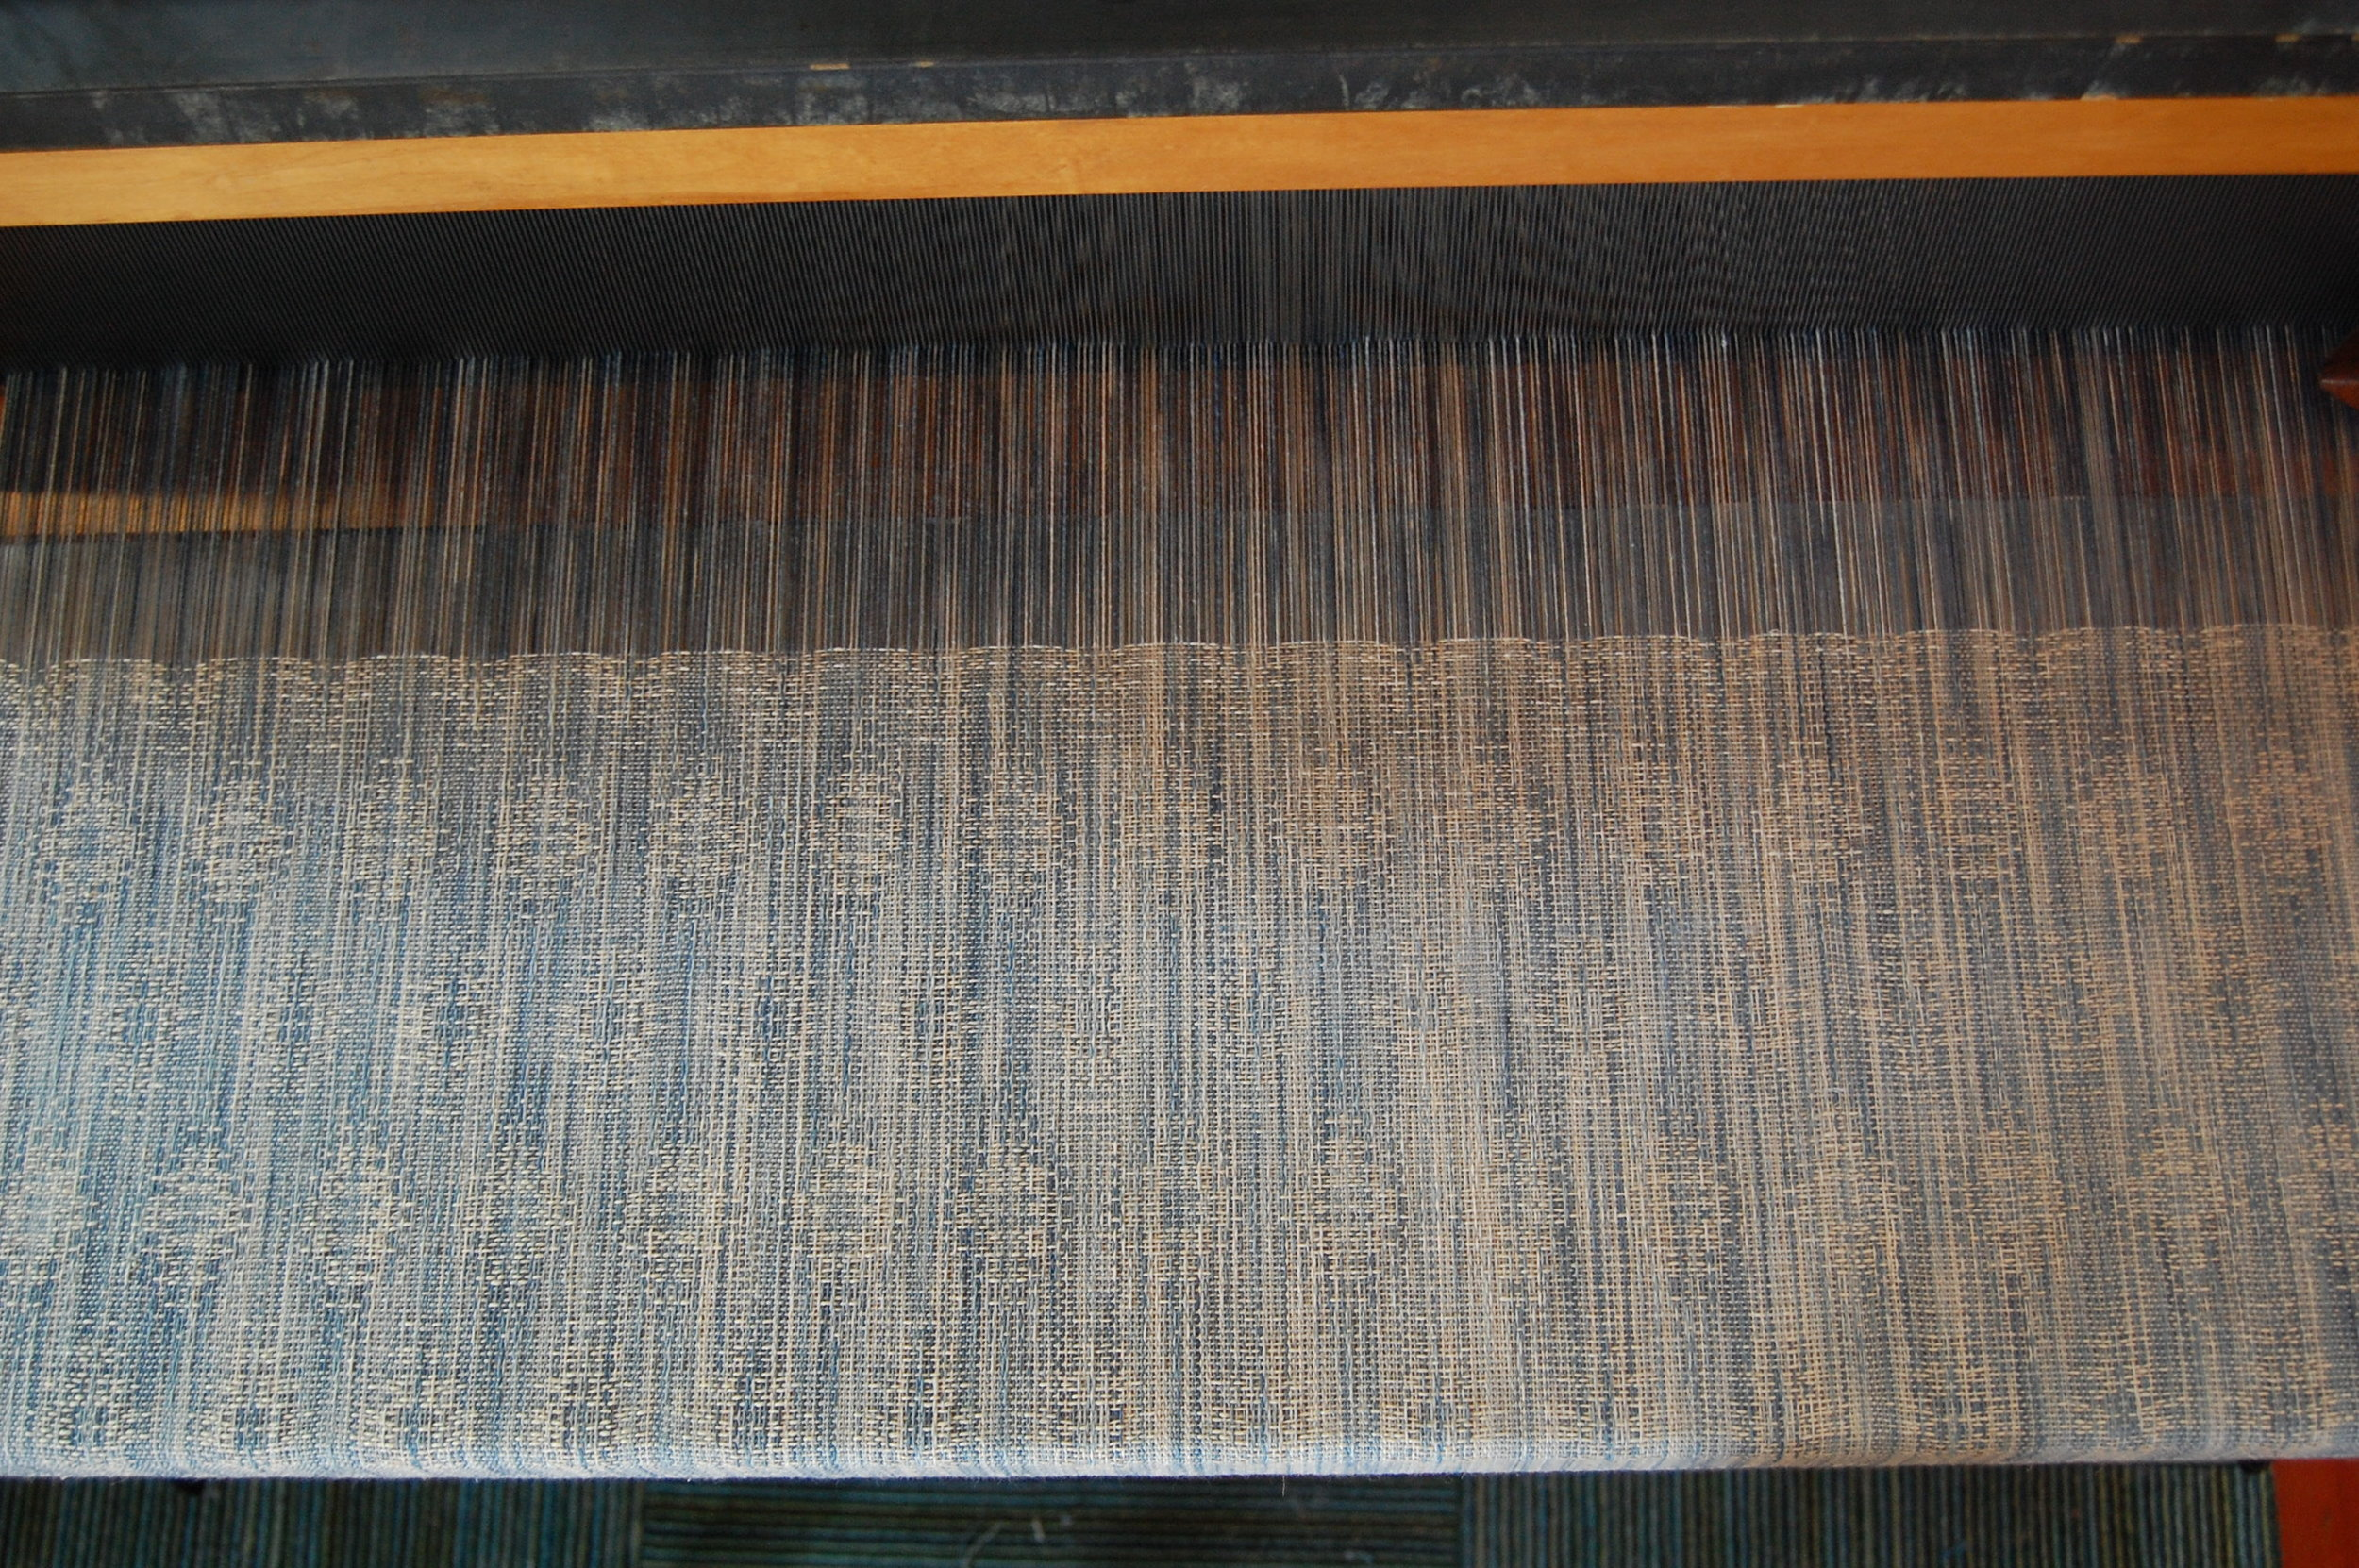 Indigo v. 2 Blueprint with natural hemp/cotton weft 4.65 meters - shown here during weaving